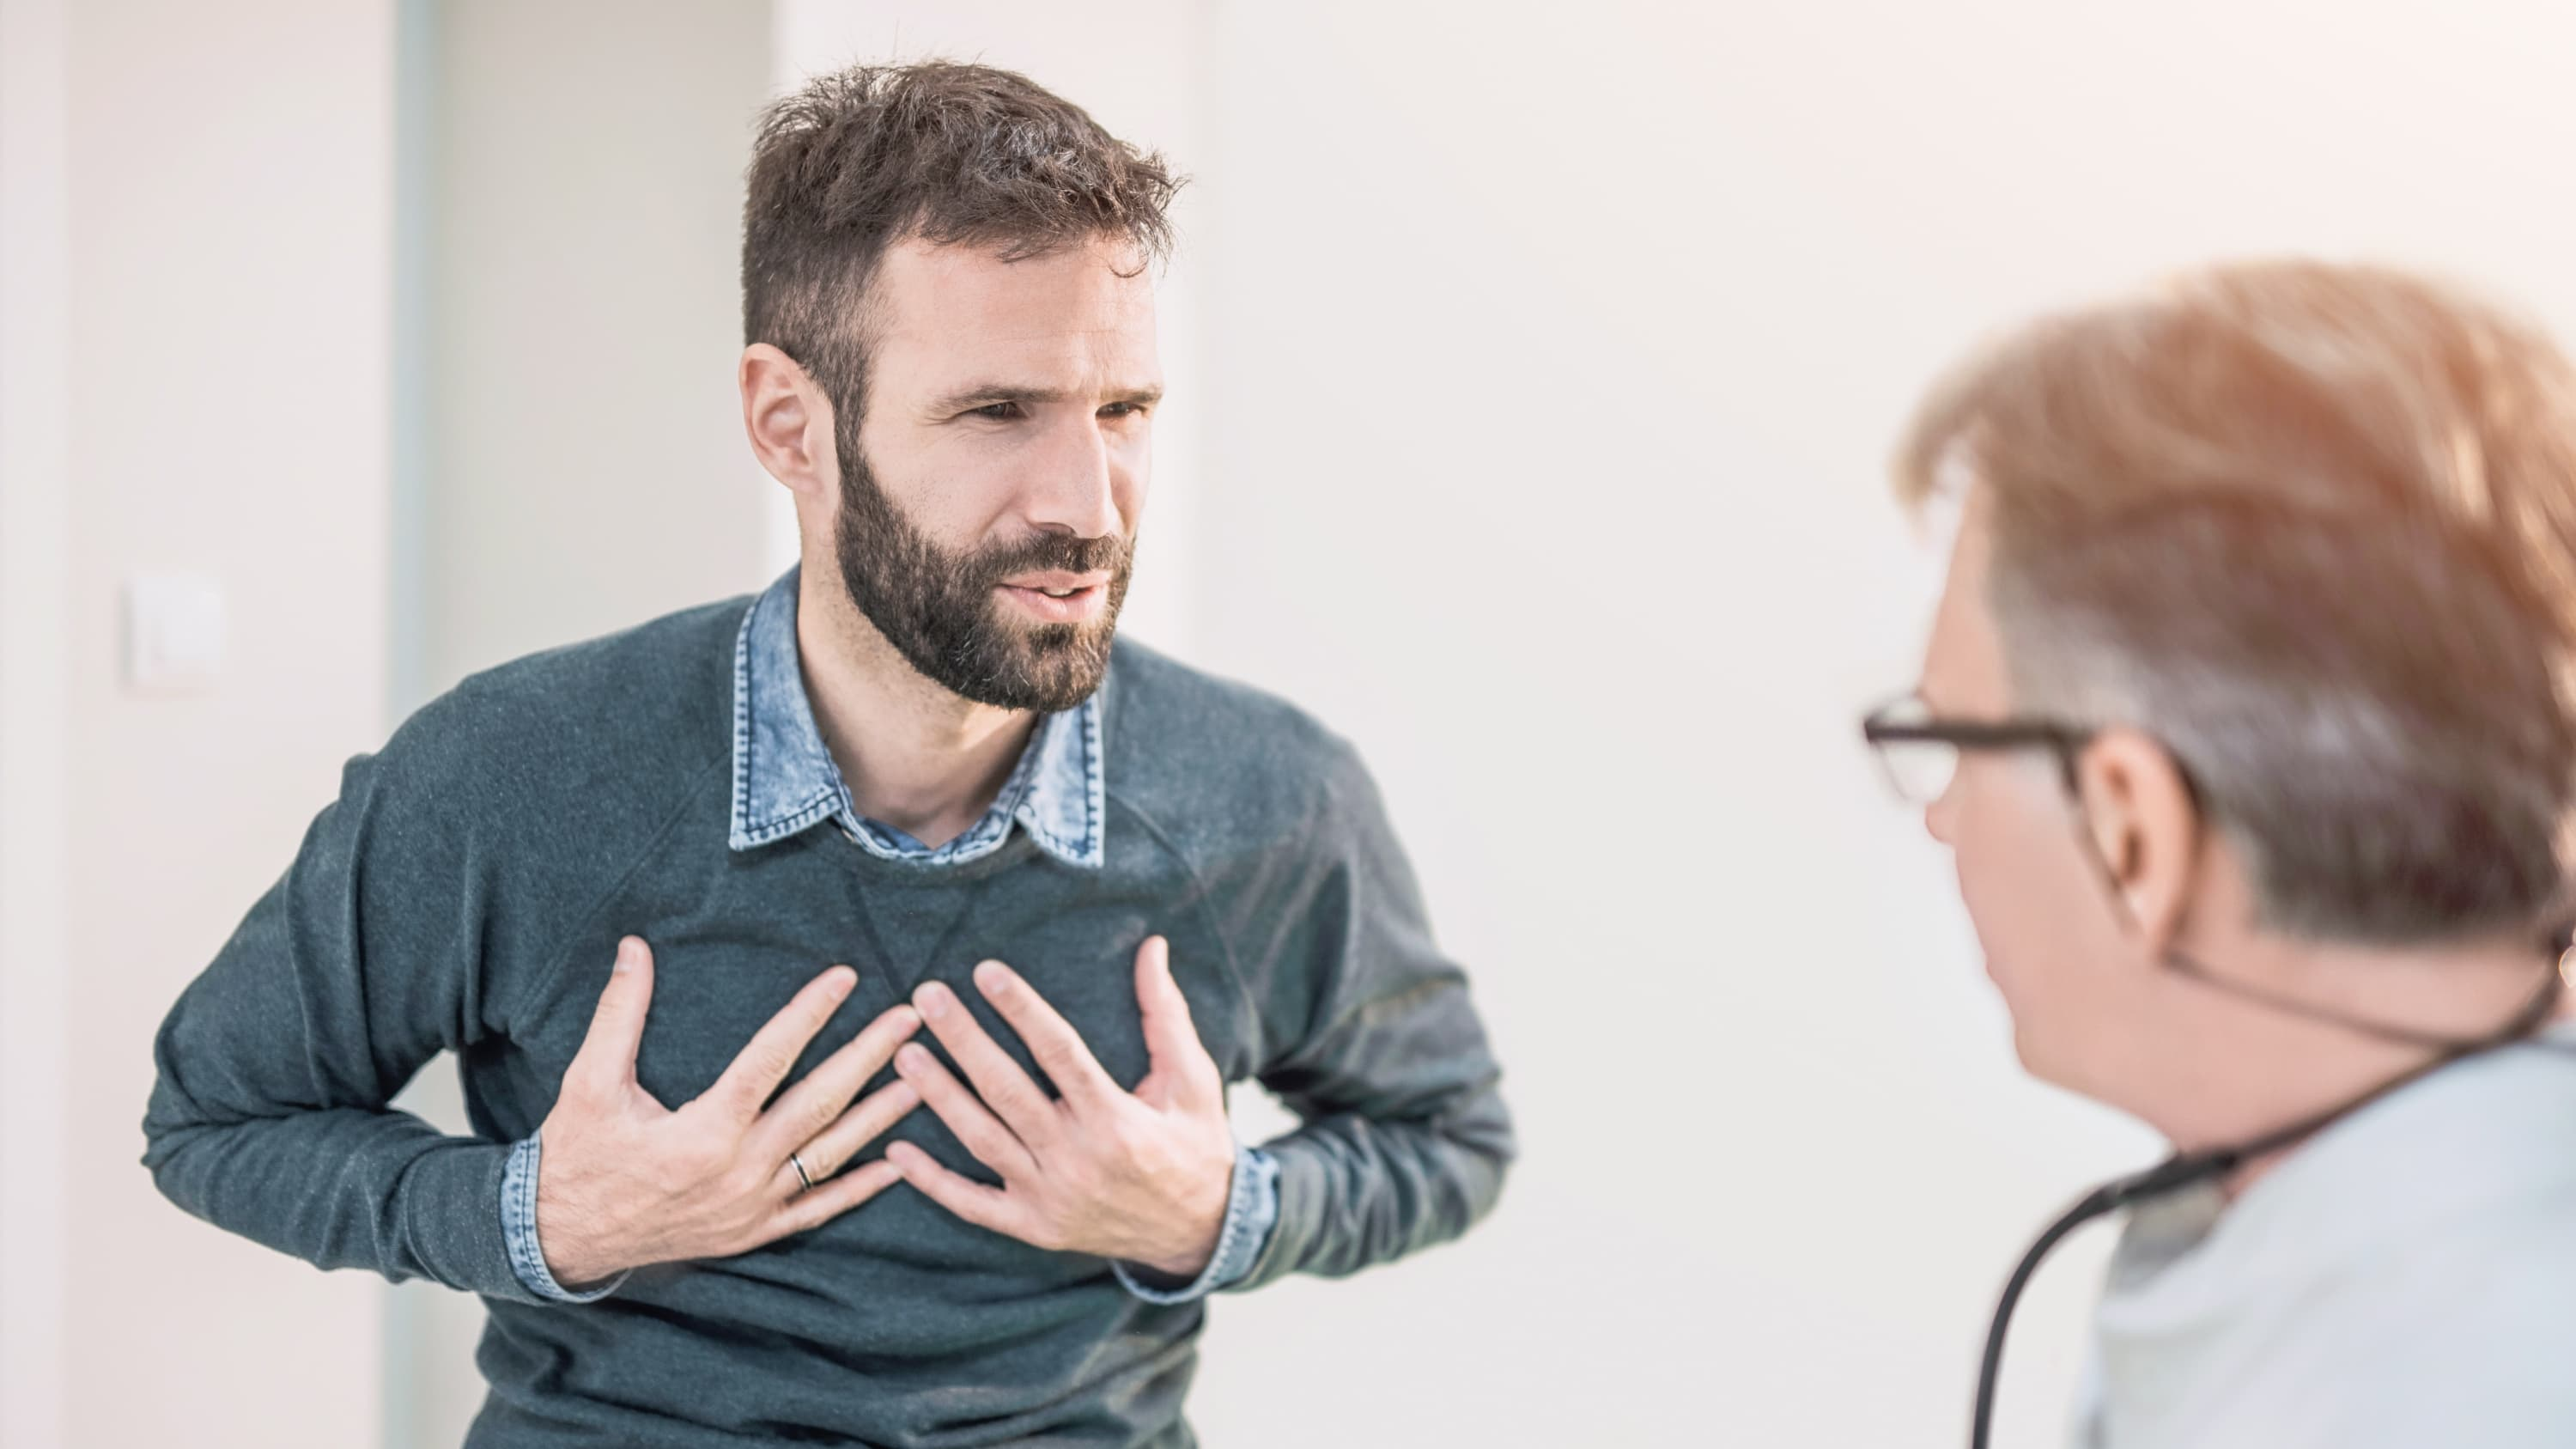 Man describes holds his chest while talking to his doctor about a possible adult congenital heart problem.